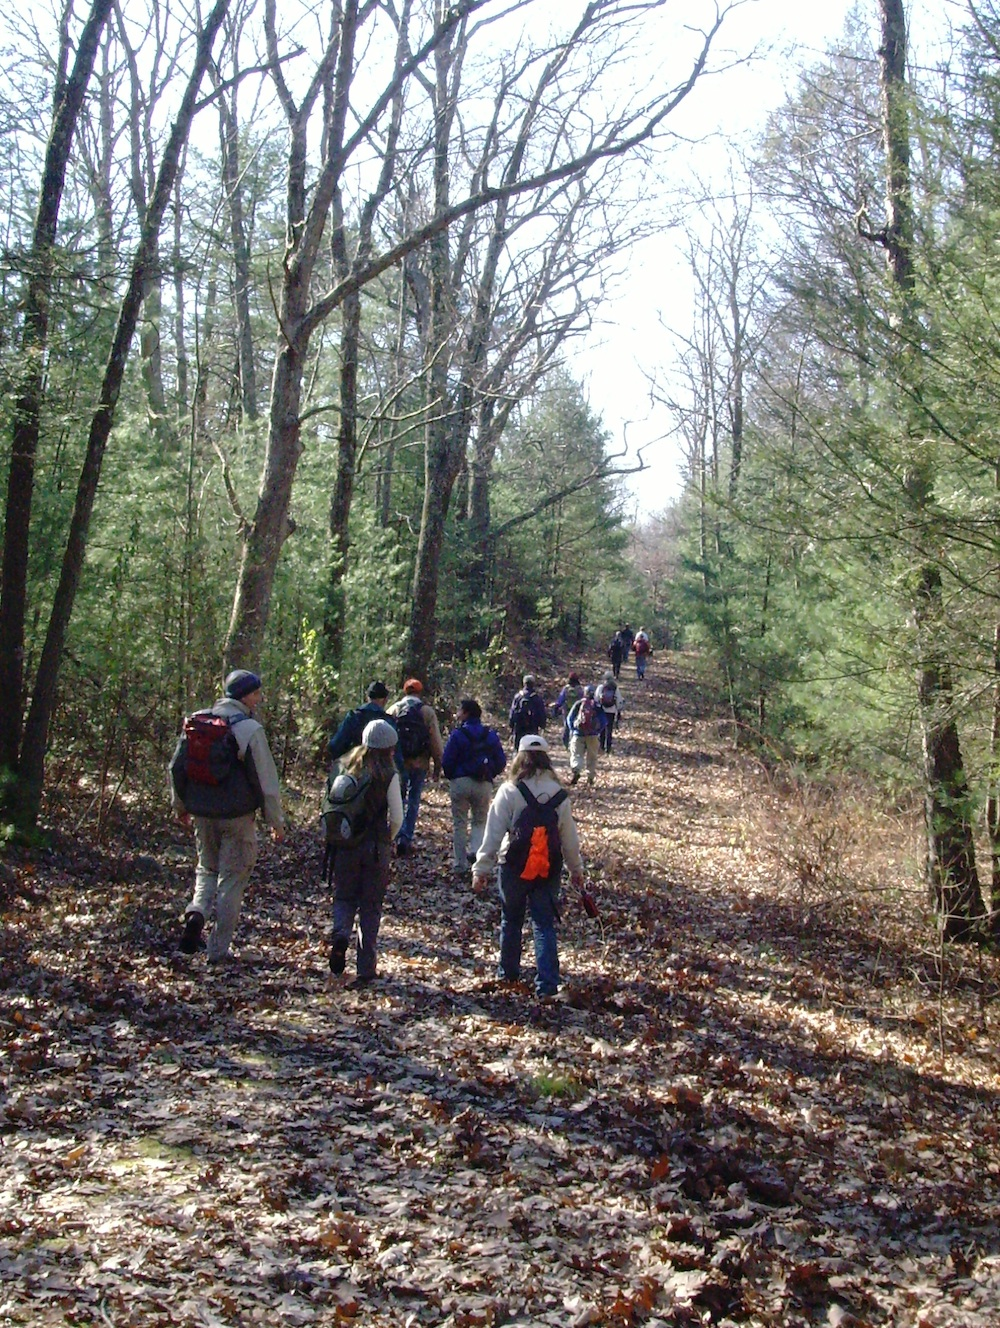 A typical group hike on easy terrain.